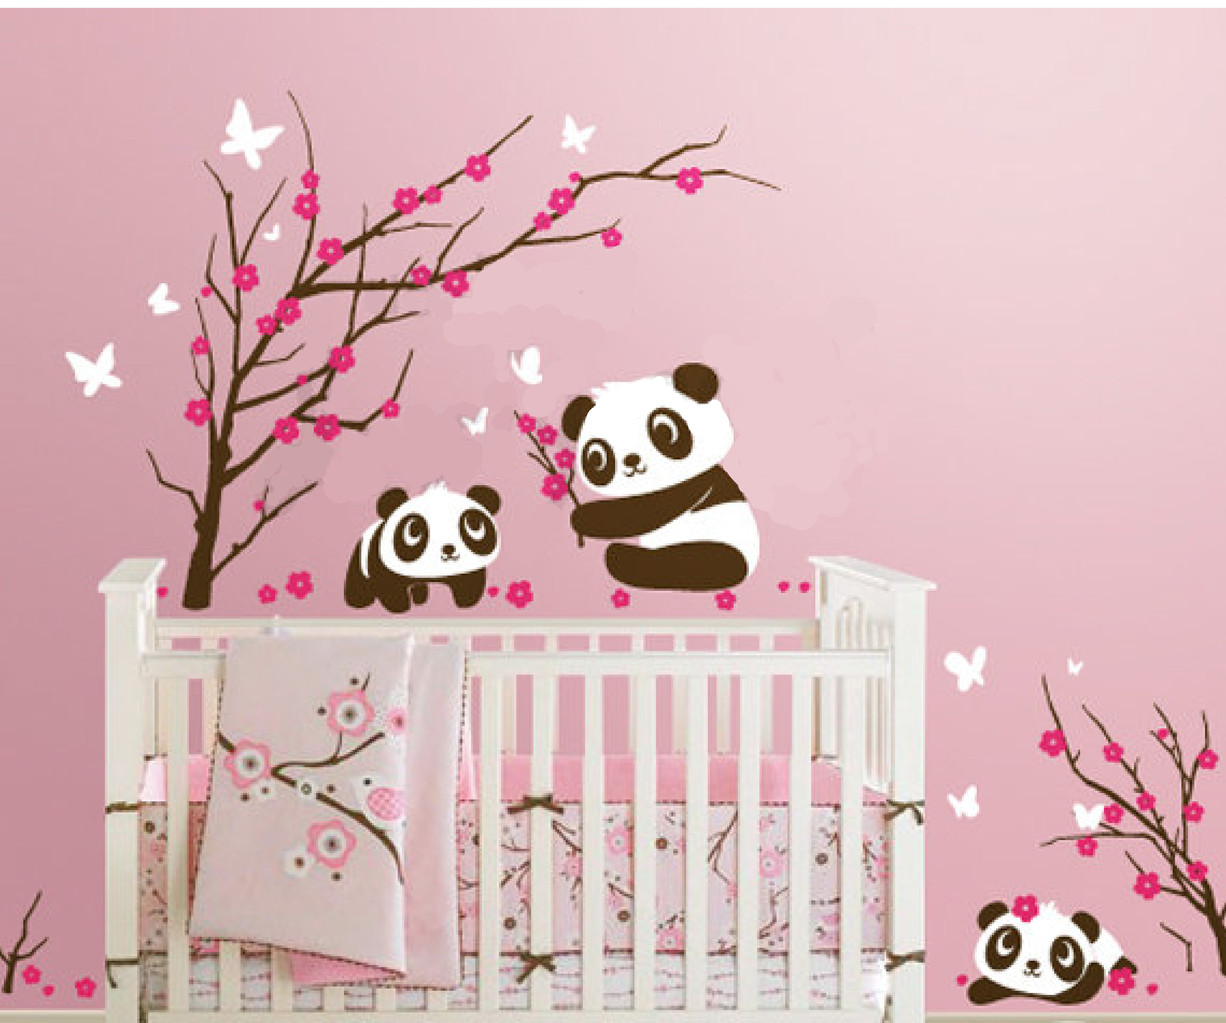 6 panda in cherry blossom nursery wall decals removable kids wall stickers fun room. Black Bedroom Furniture Sets. Home Design Ideas